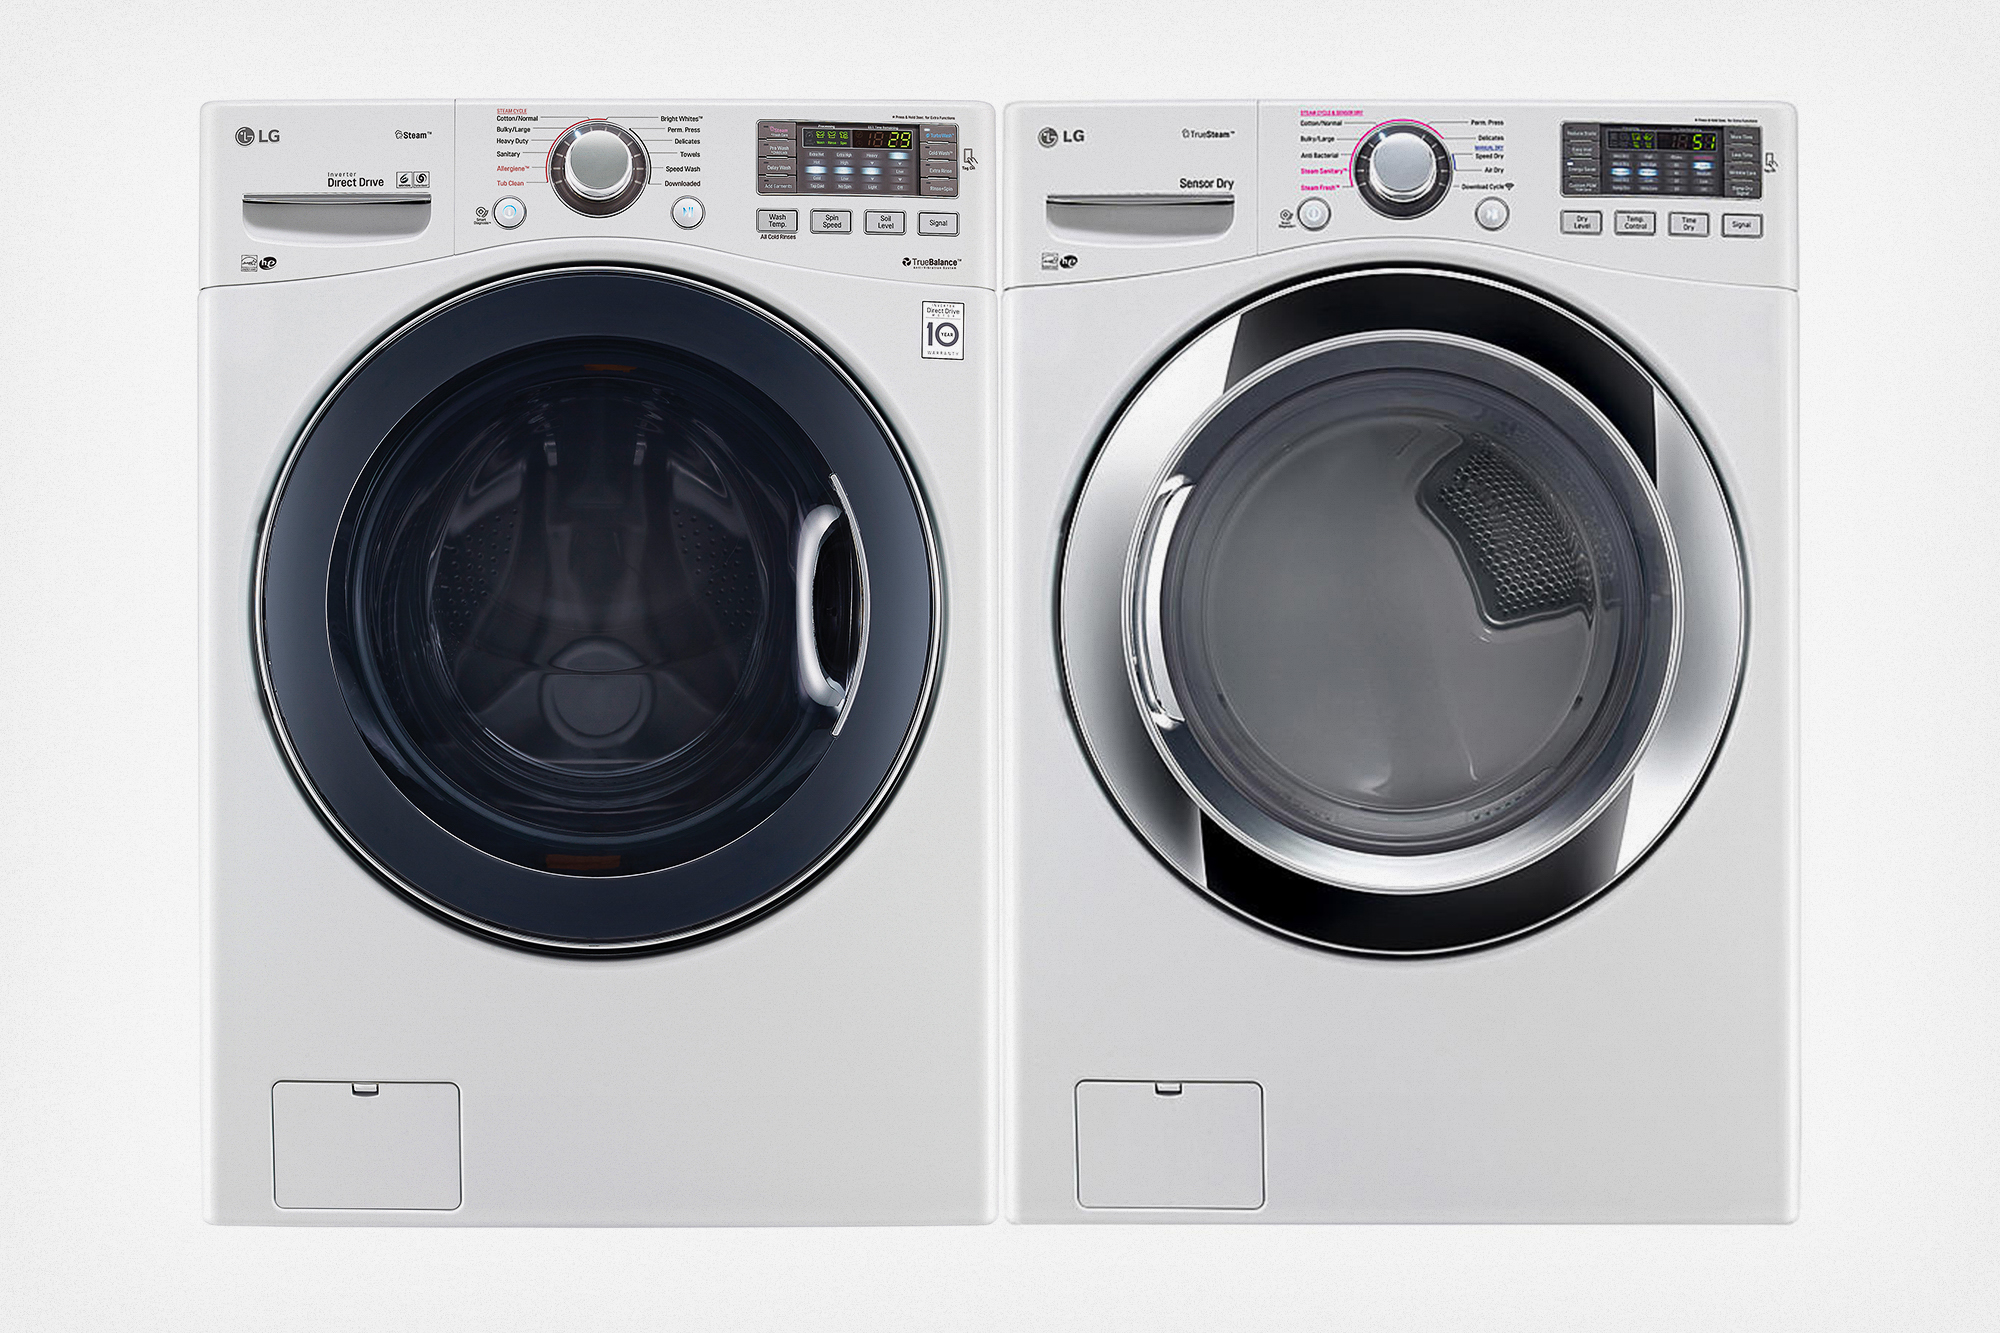 The Best Washer And Dryer Aivanet